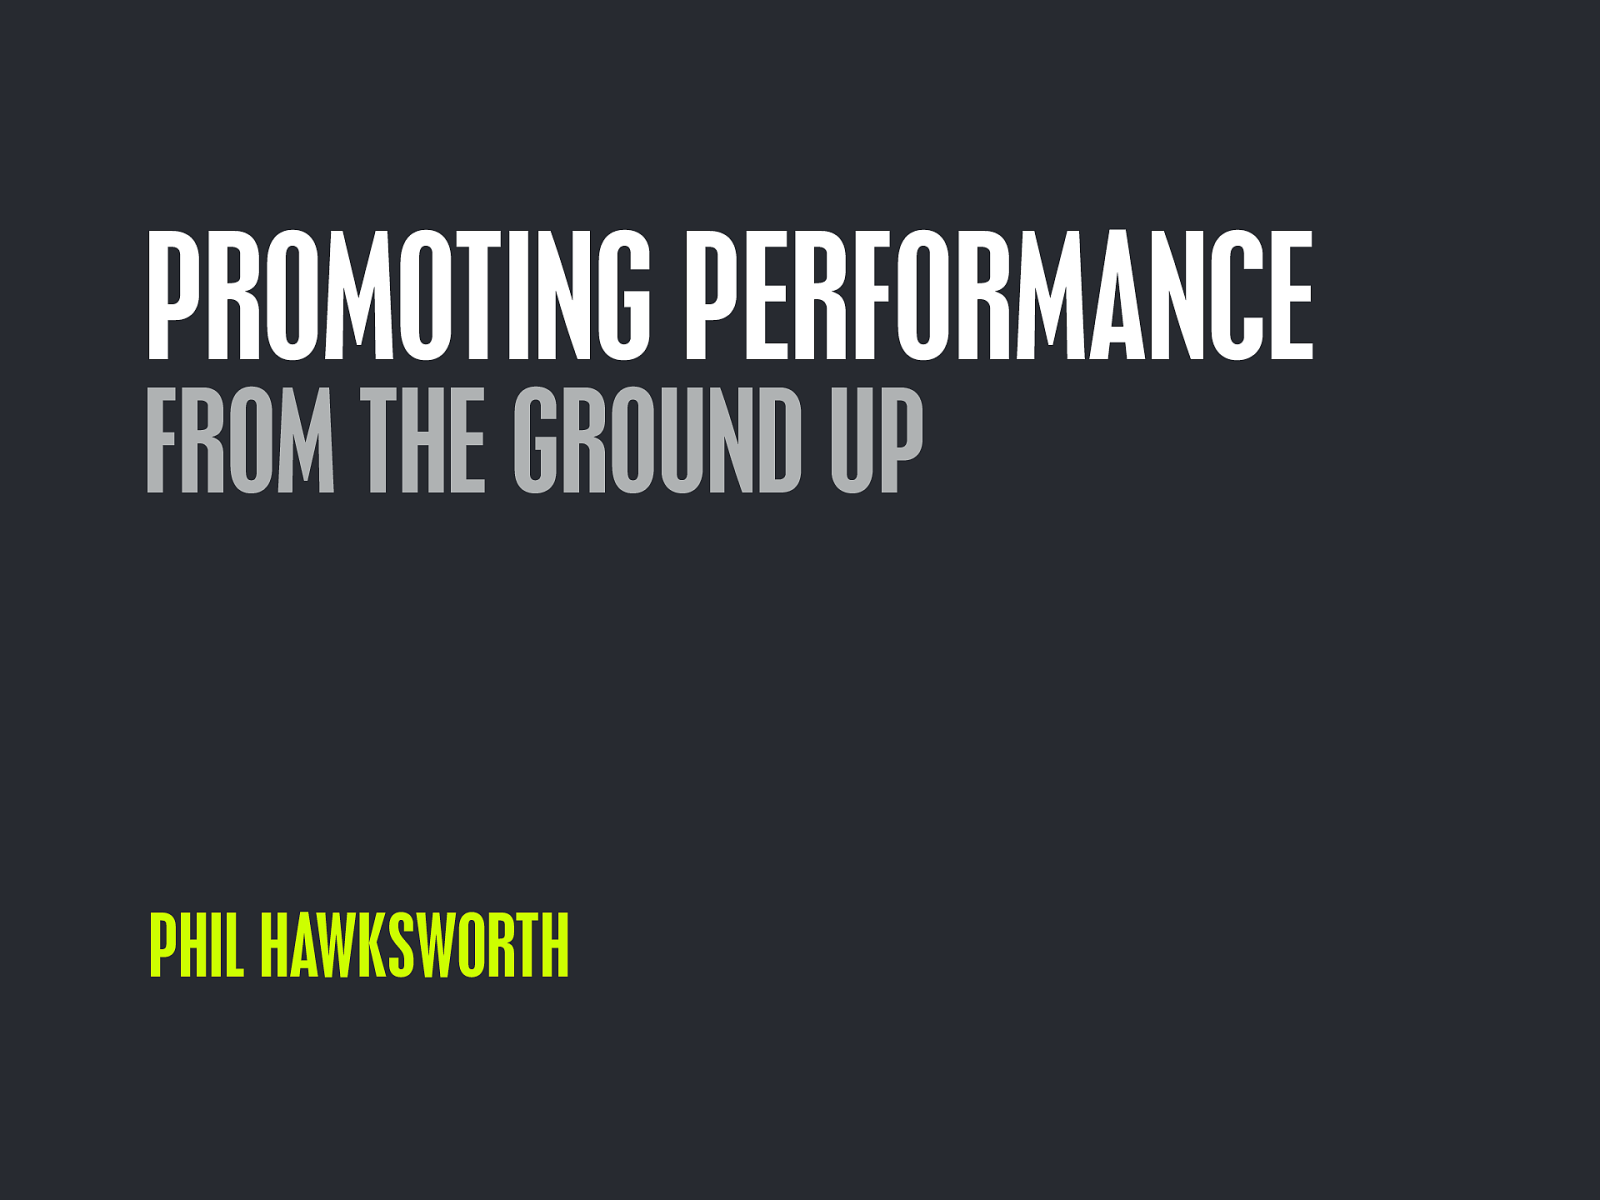 Promoting Performance from the Ground Up